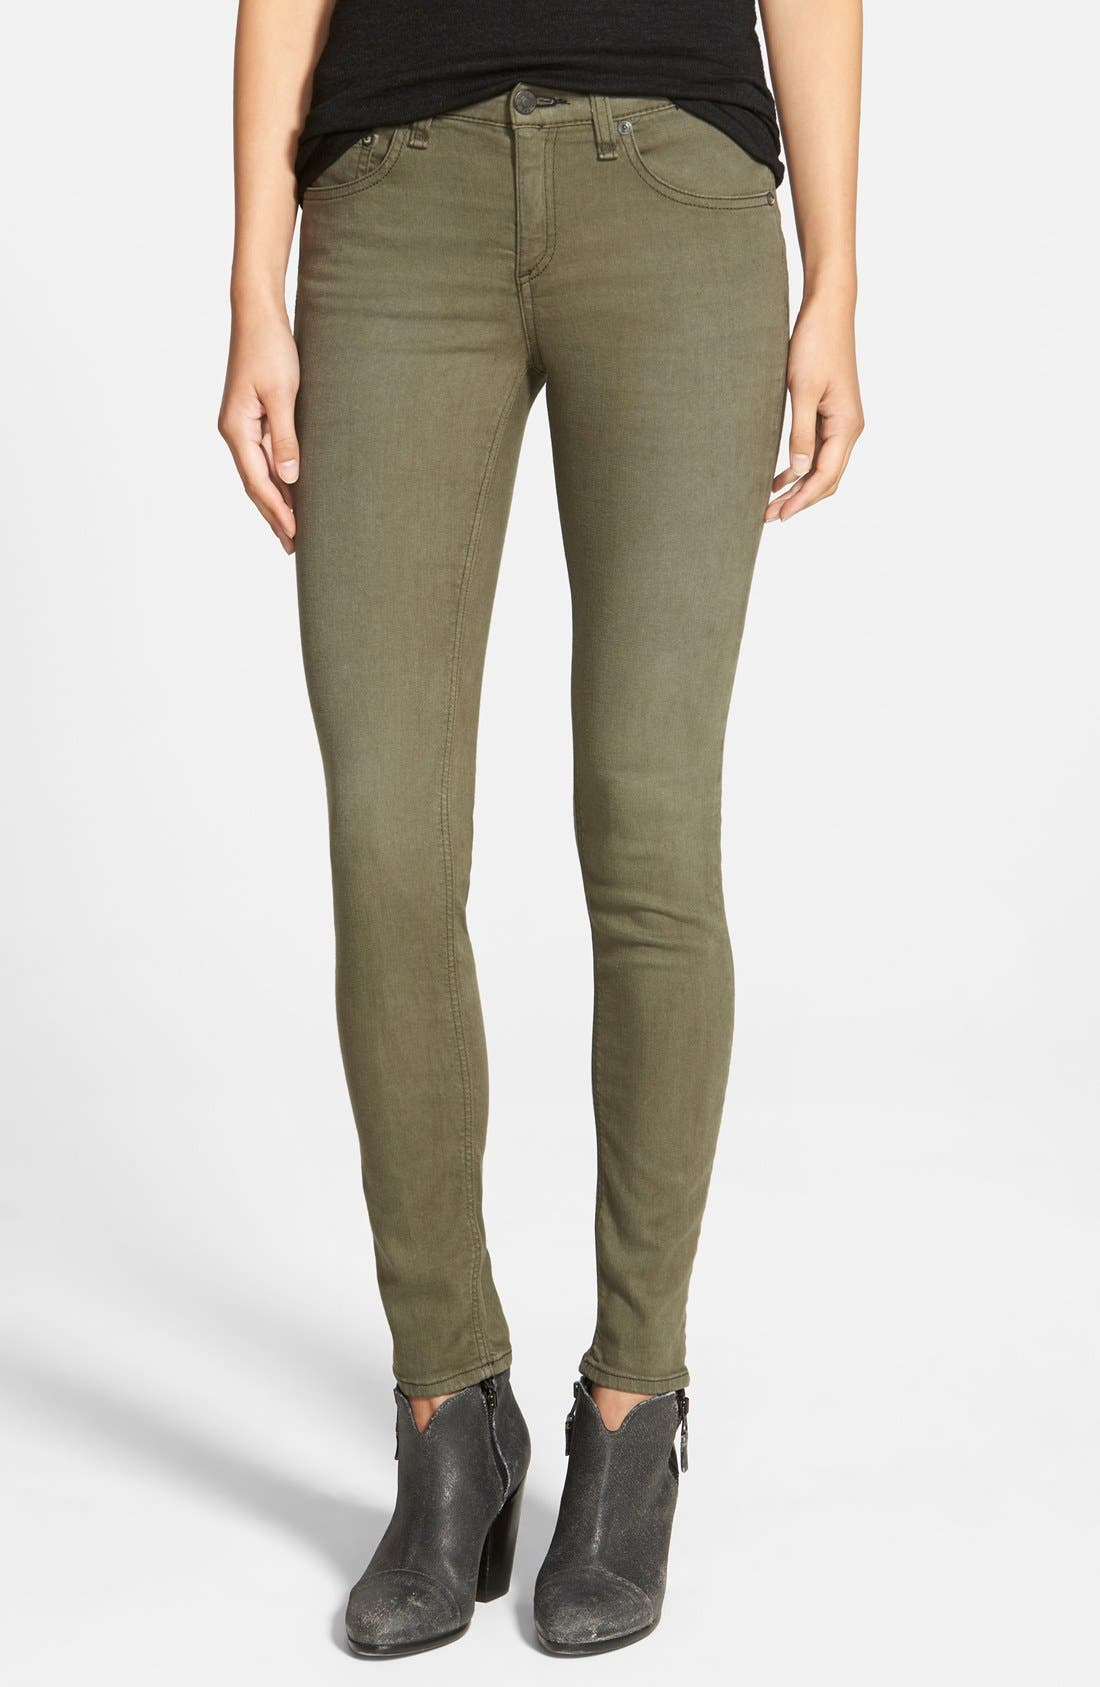 Main Image - rag & bone/JEAN 'The Skinny' Jeans (Distressed Fatigue) (Nordstrom Exclusive)